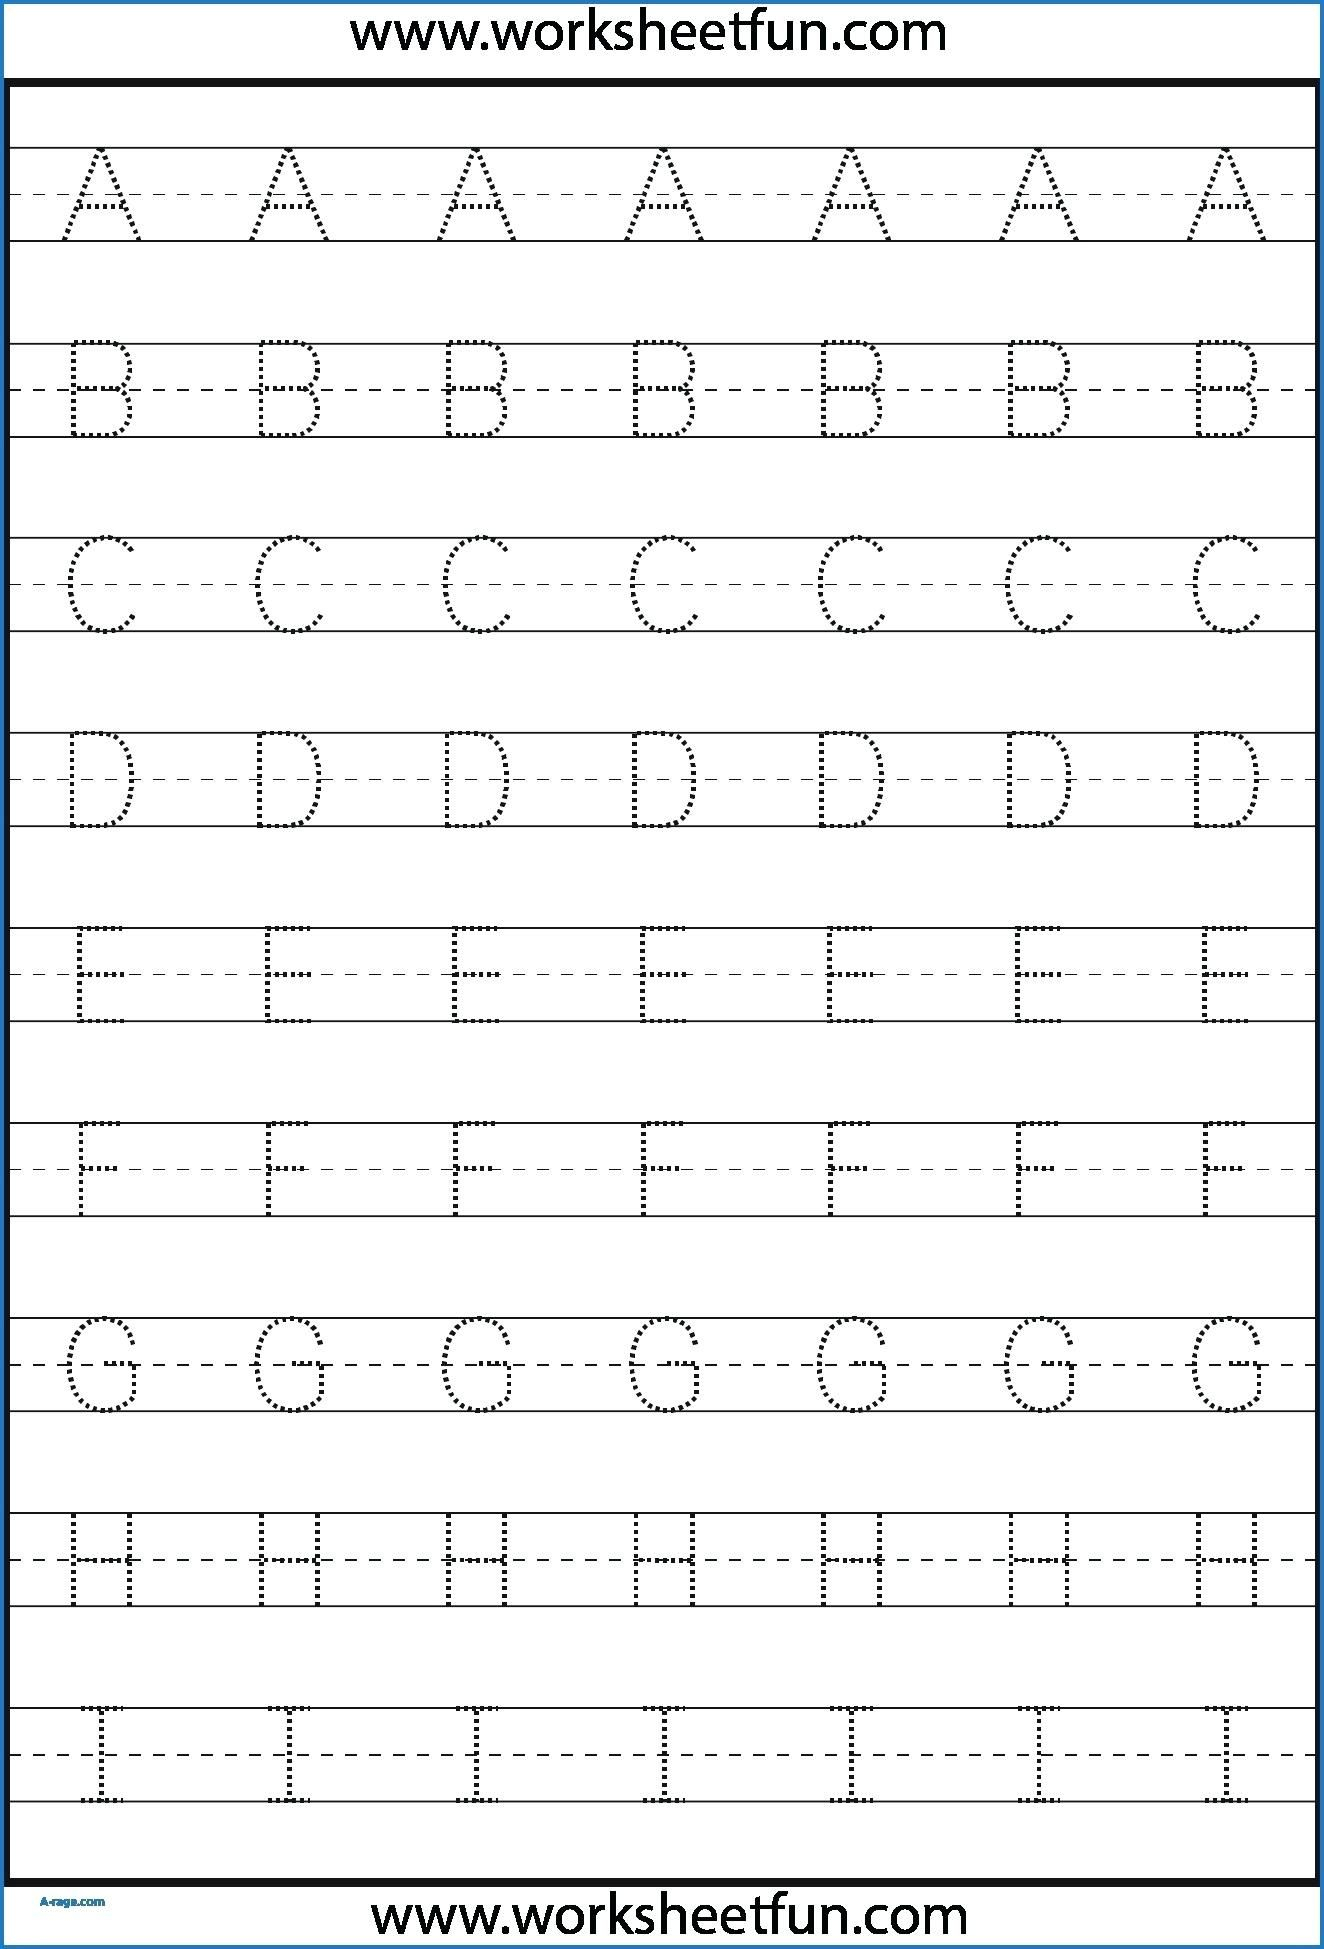 Kindergarten Letter Tracing Worksheets Pdf - Wallpaper Image with Kindergarten Alphabet Worksheets